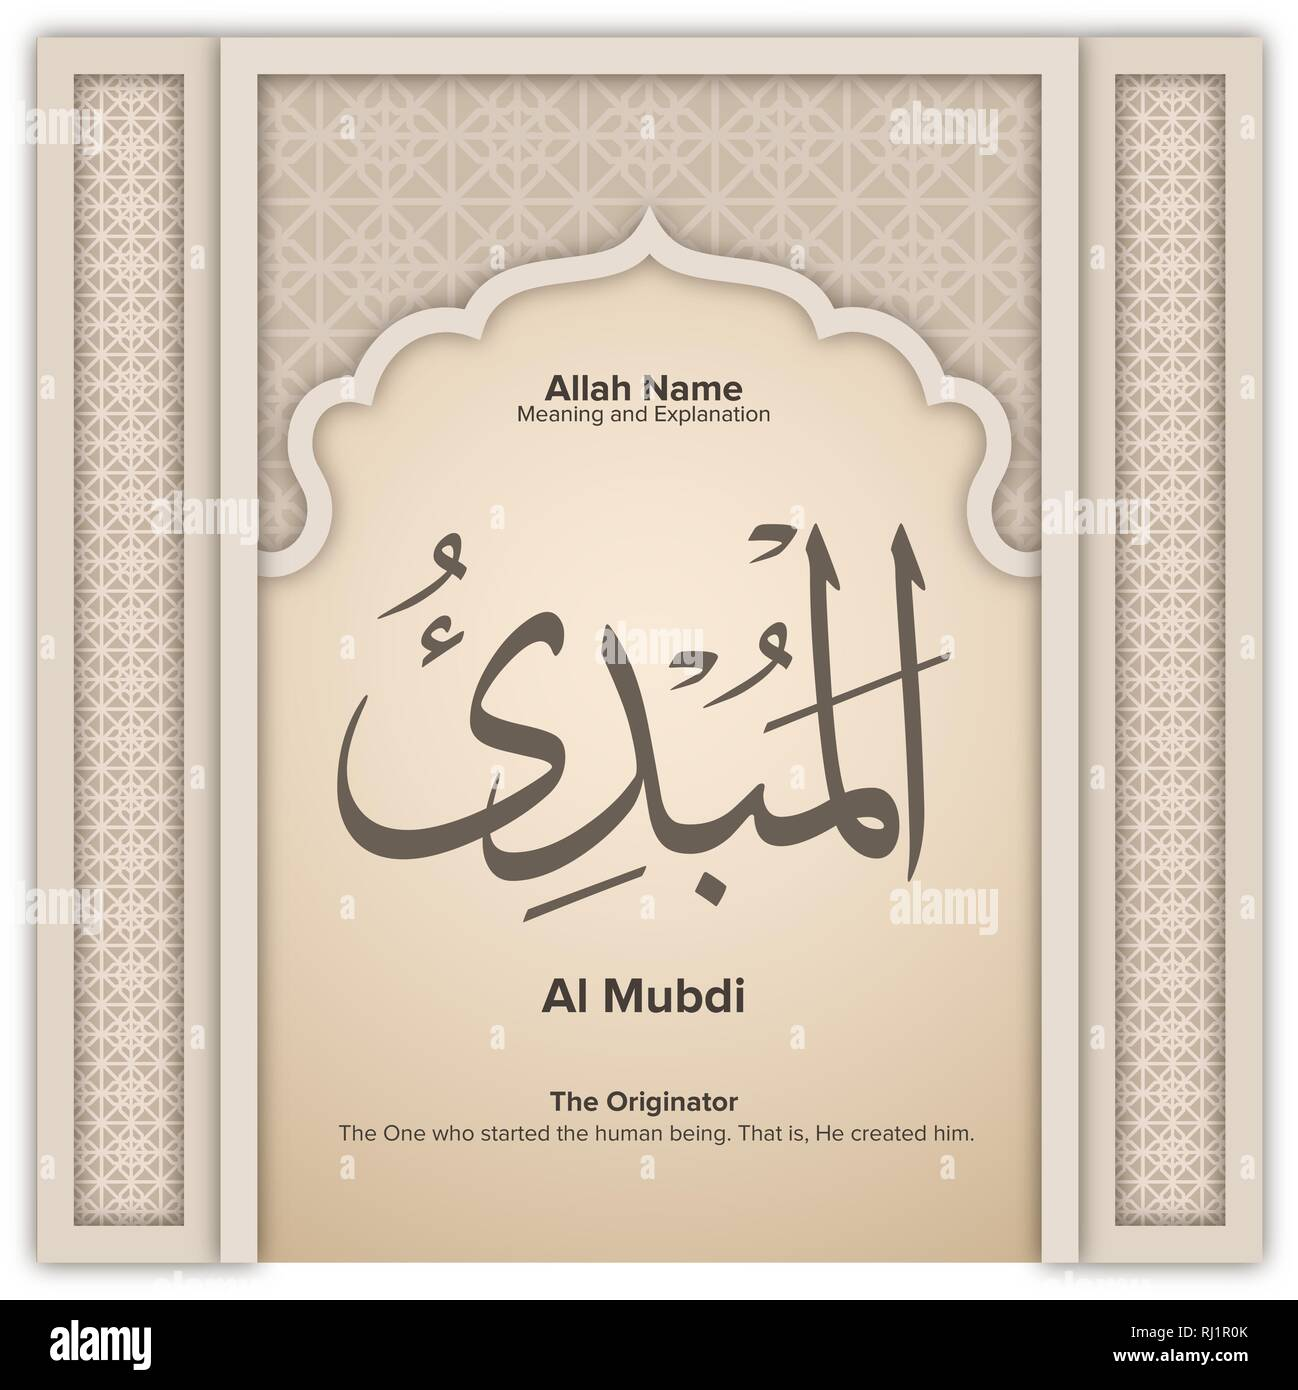 https www alamy com 99 names of allah with meaning and explanation image234838595 html